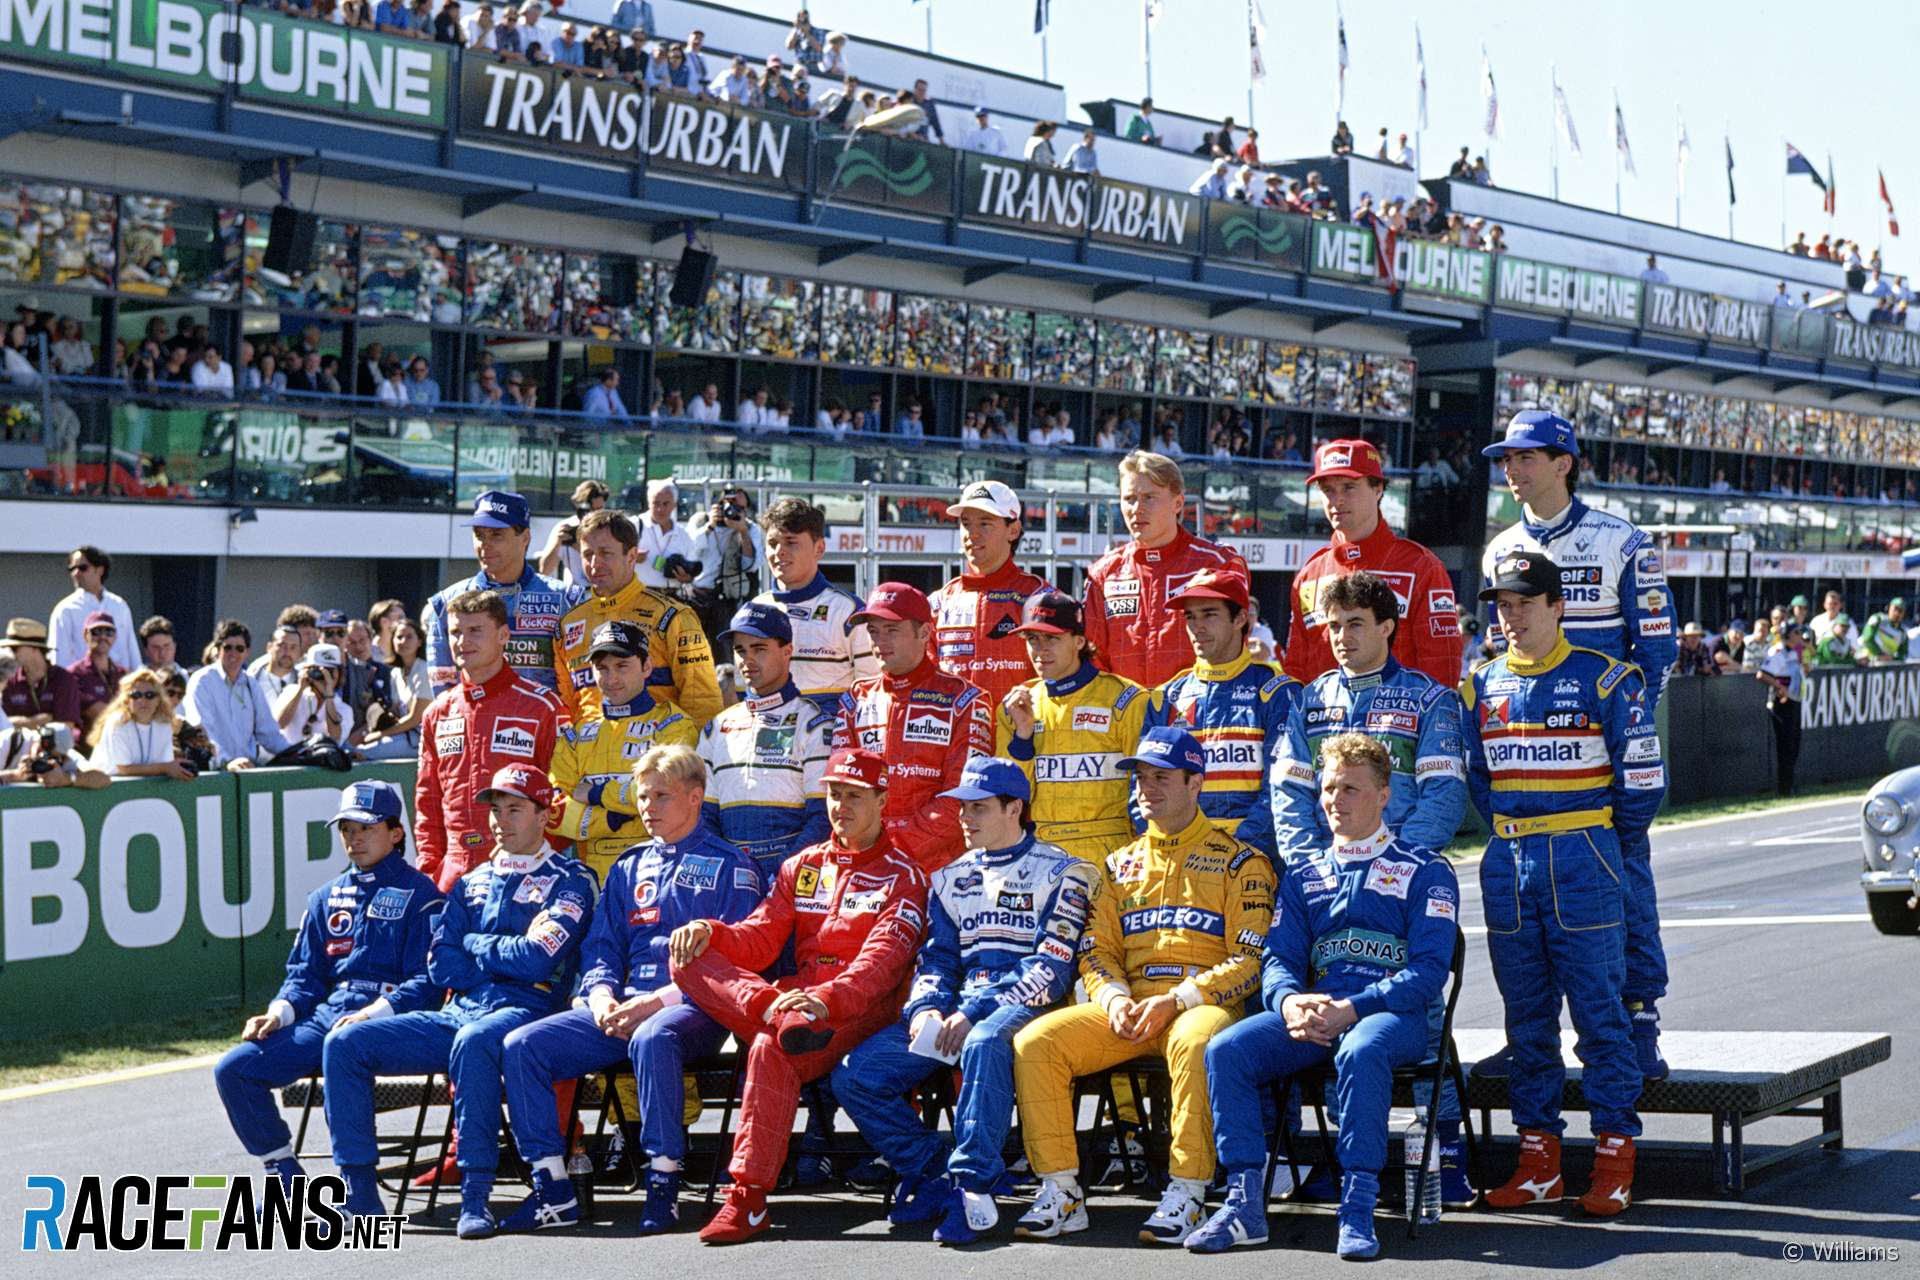 F1 drivers' group photographs, 1996-2019 · RaceFans